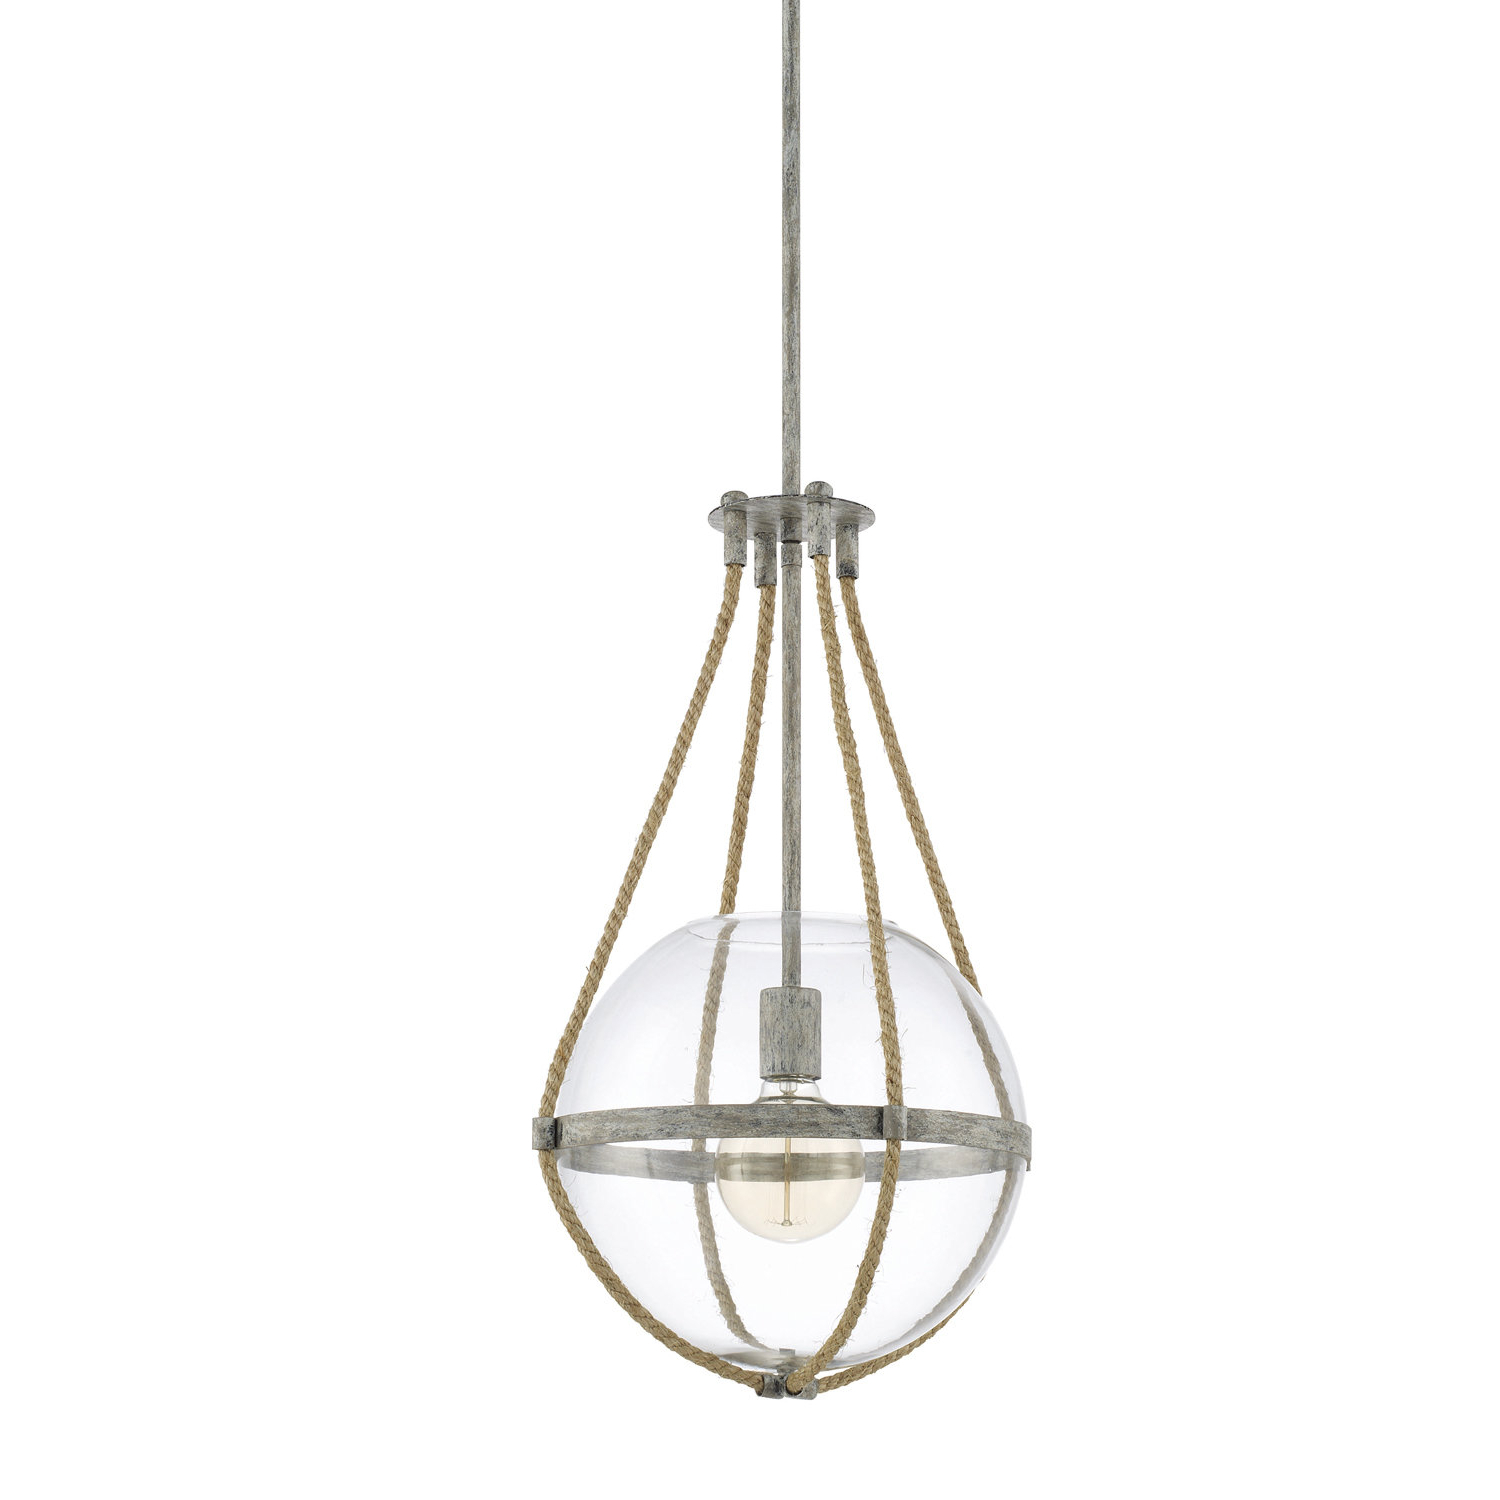 Gehry 1 Light Single Globe Pendants With Regard To Best And Newest Gonzalas 1 Light Single Globe Pendant (View 9 of 20)